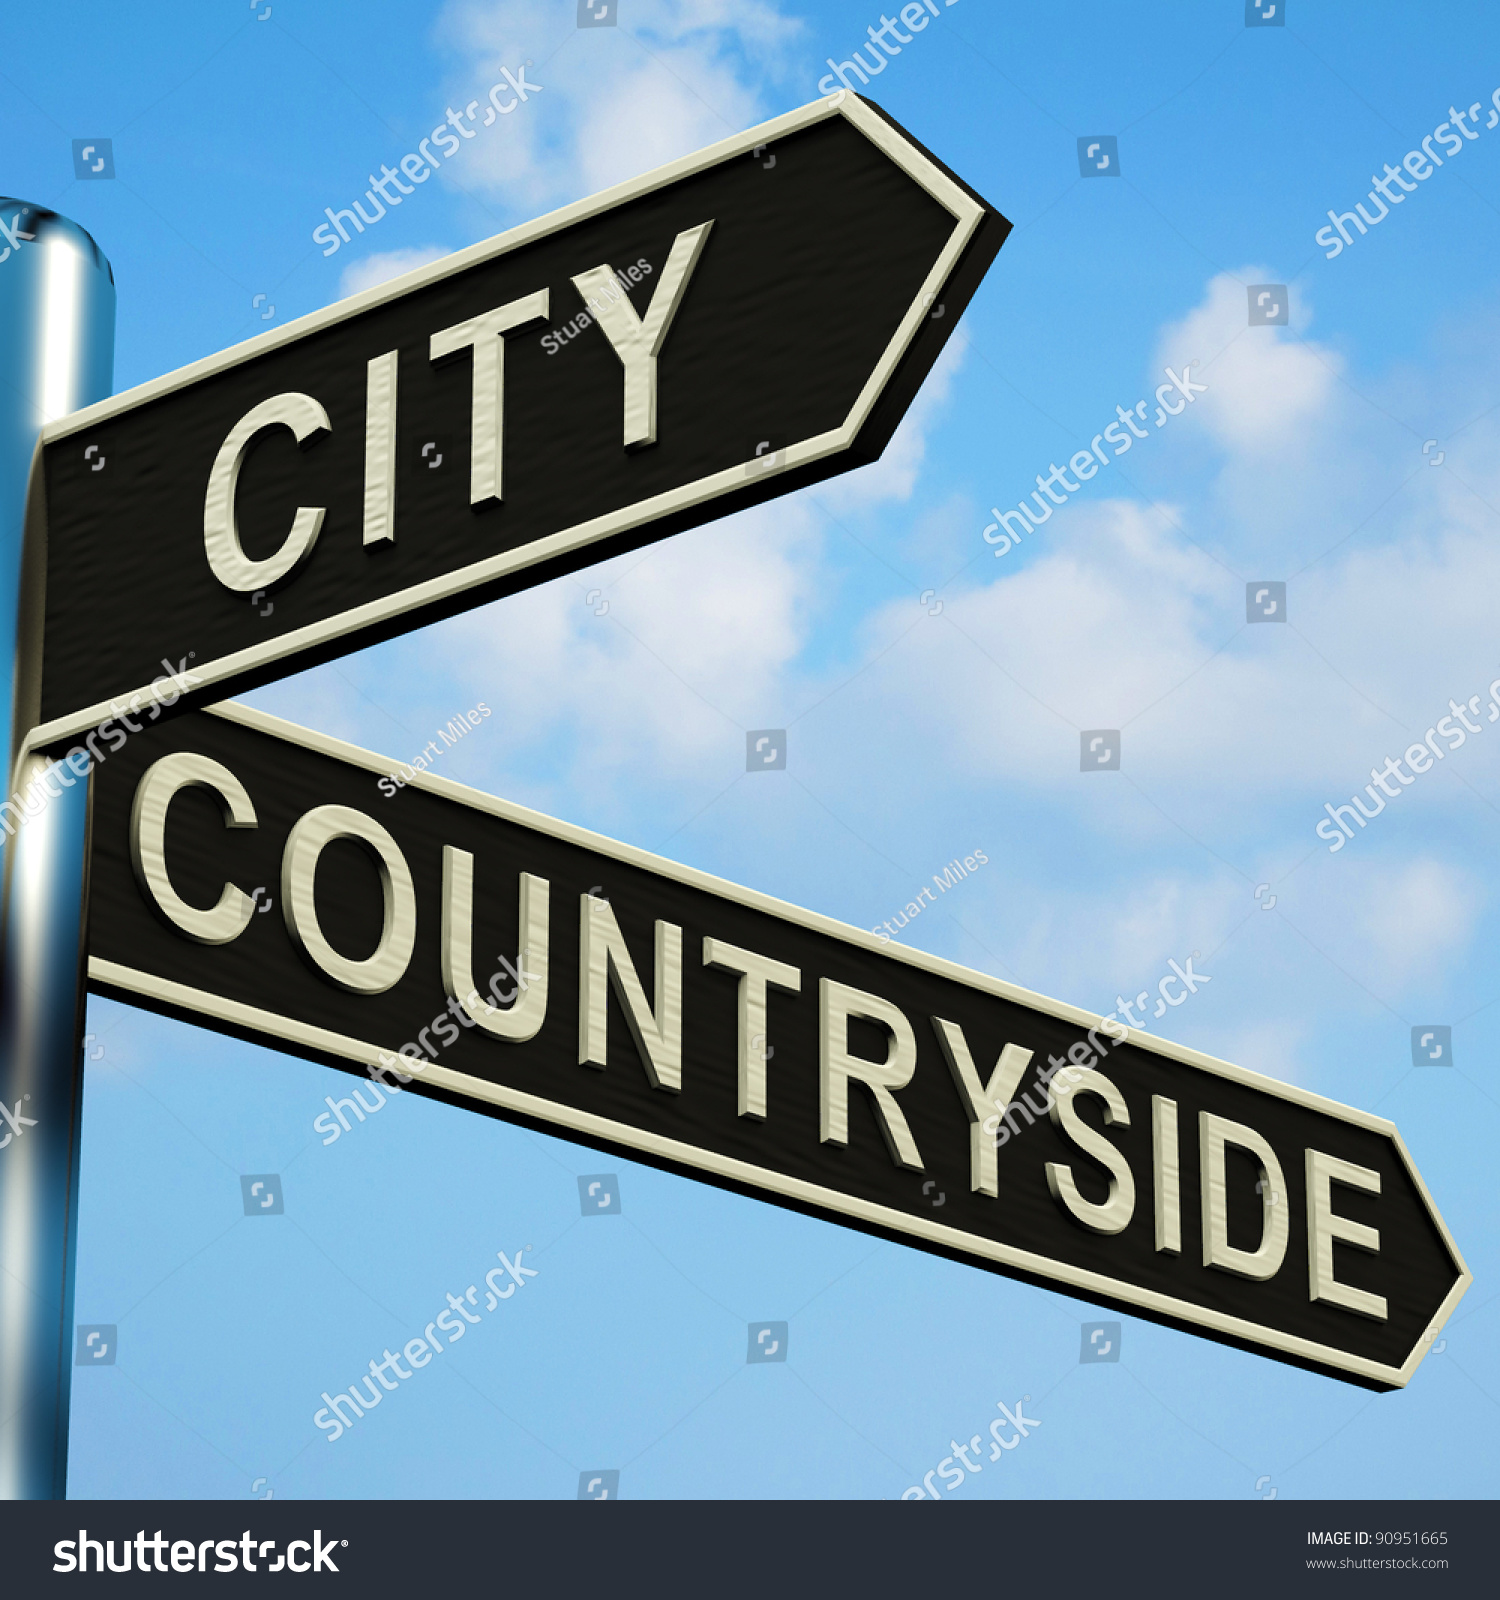 city or countryside essay Free essay: people who live in the city are like first, city life and countryside life are different from more about difference between city life & country.